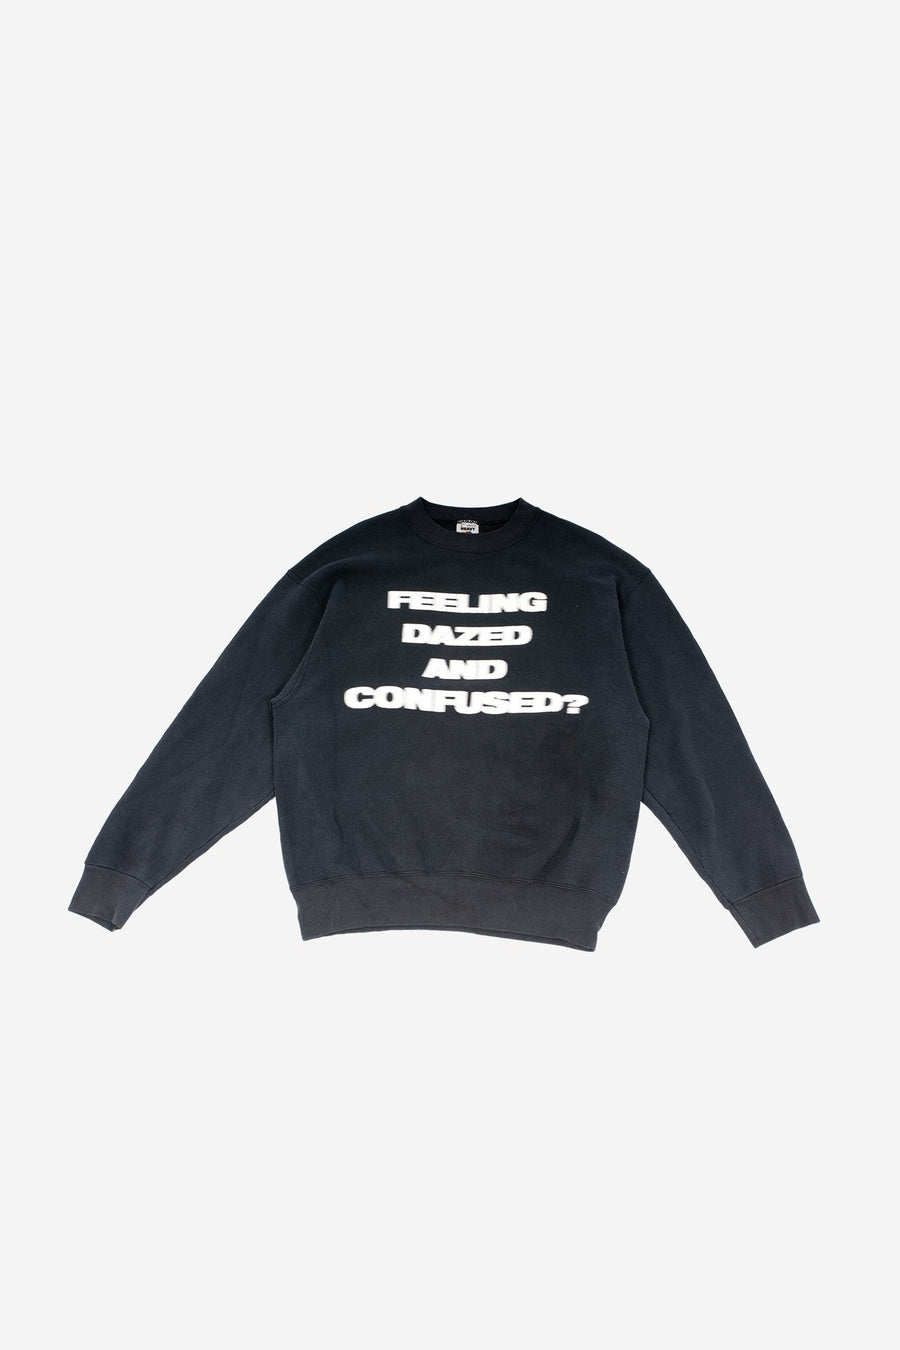 Crewneck Feeling dazed and confused? - WASTED PARIS